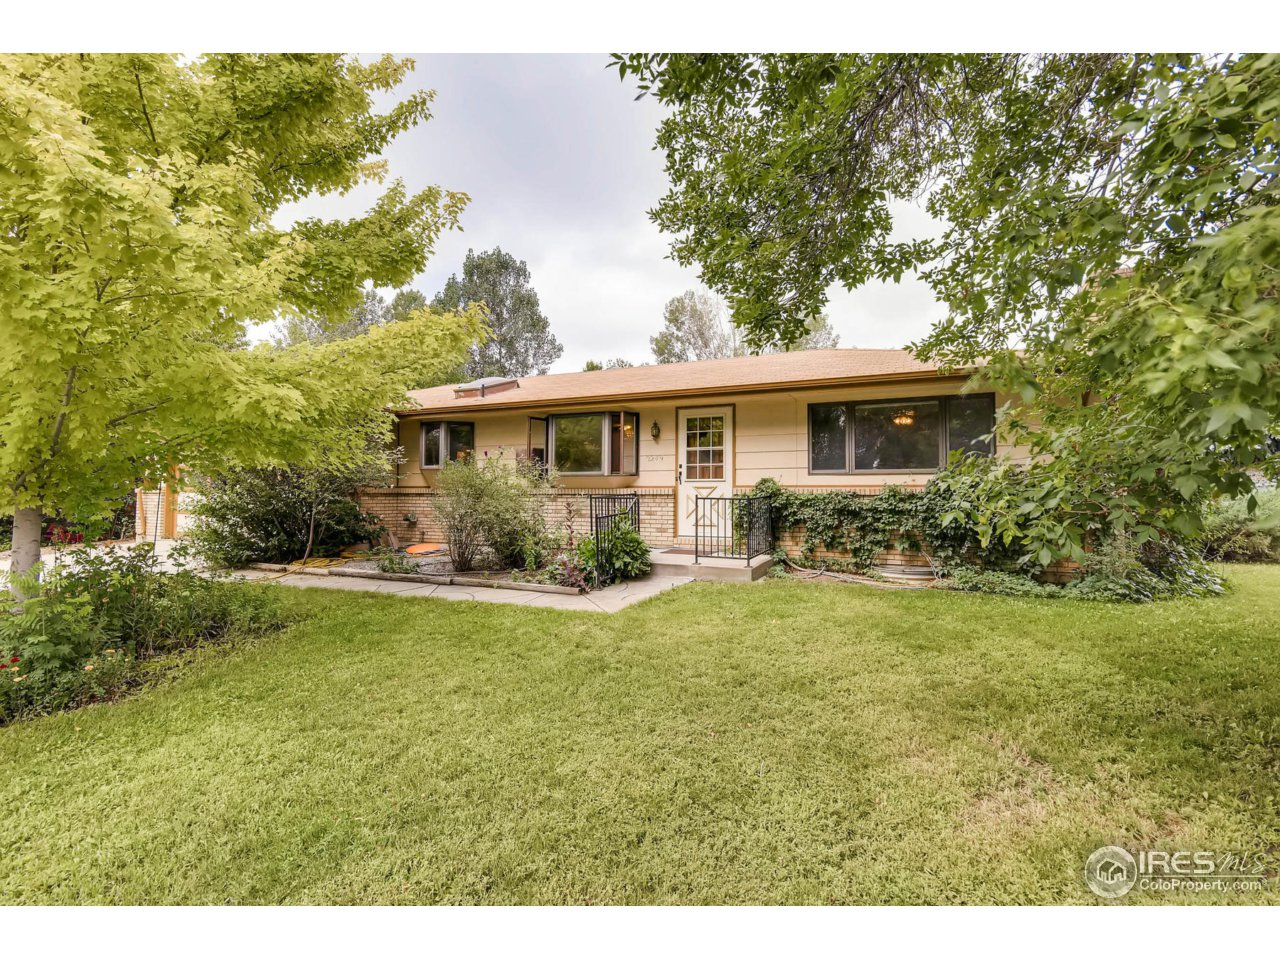 2249 Jewel St, Longmont CO 80501